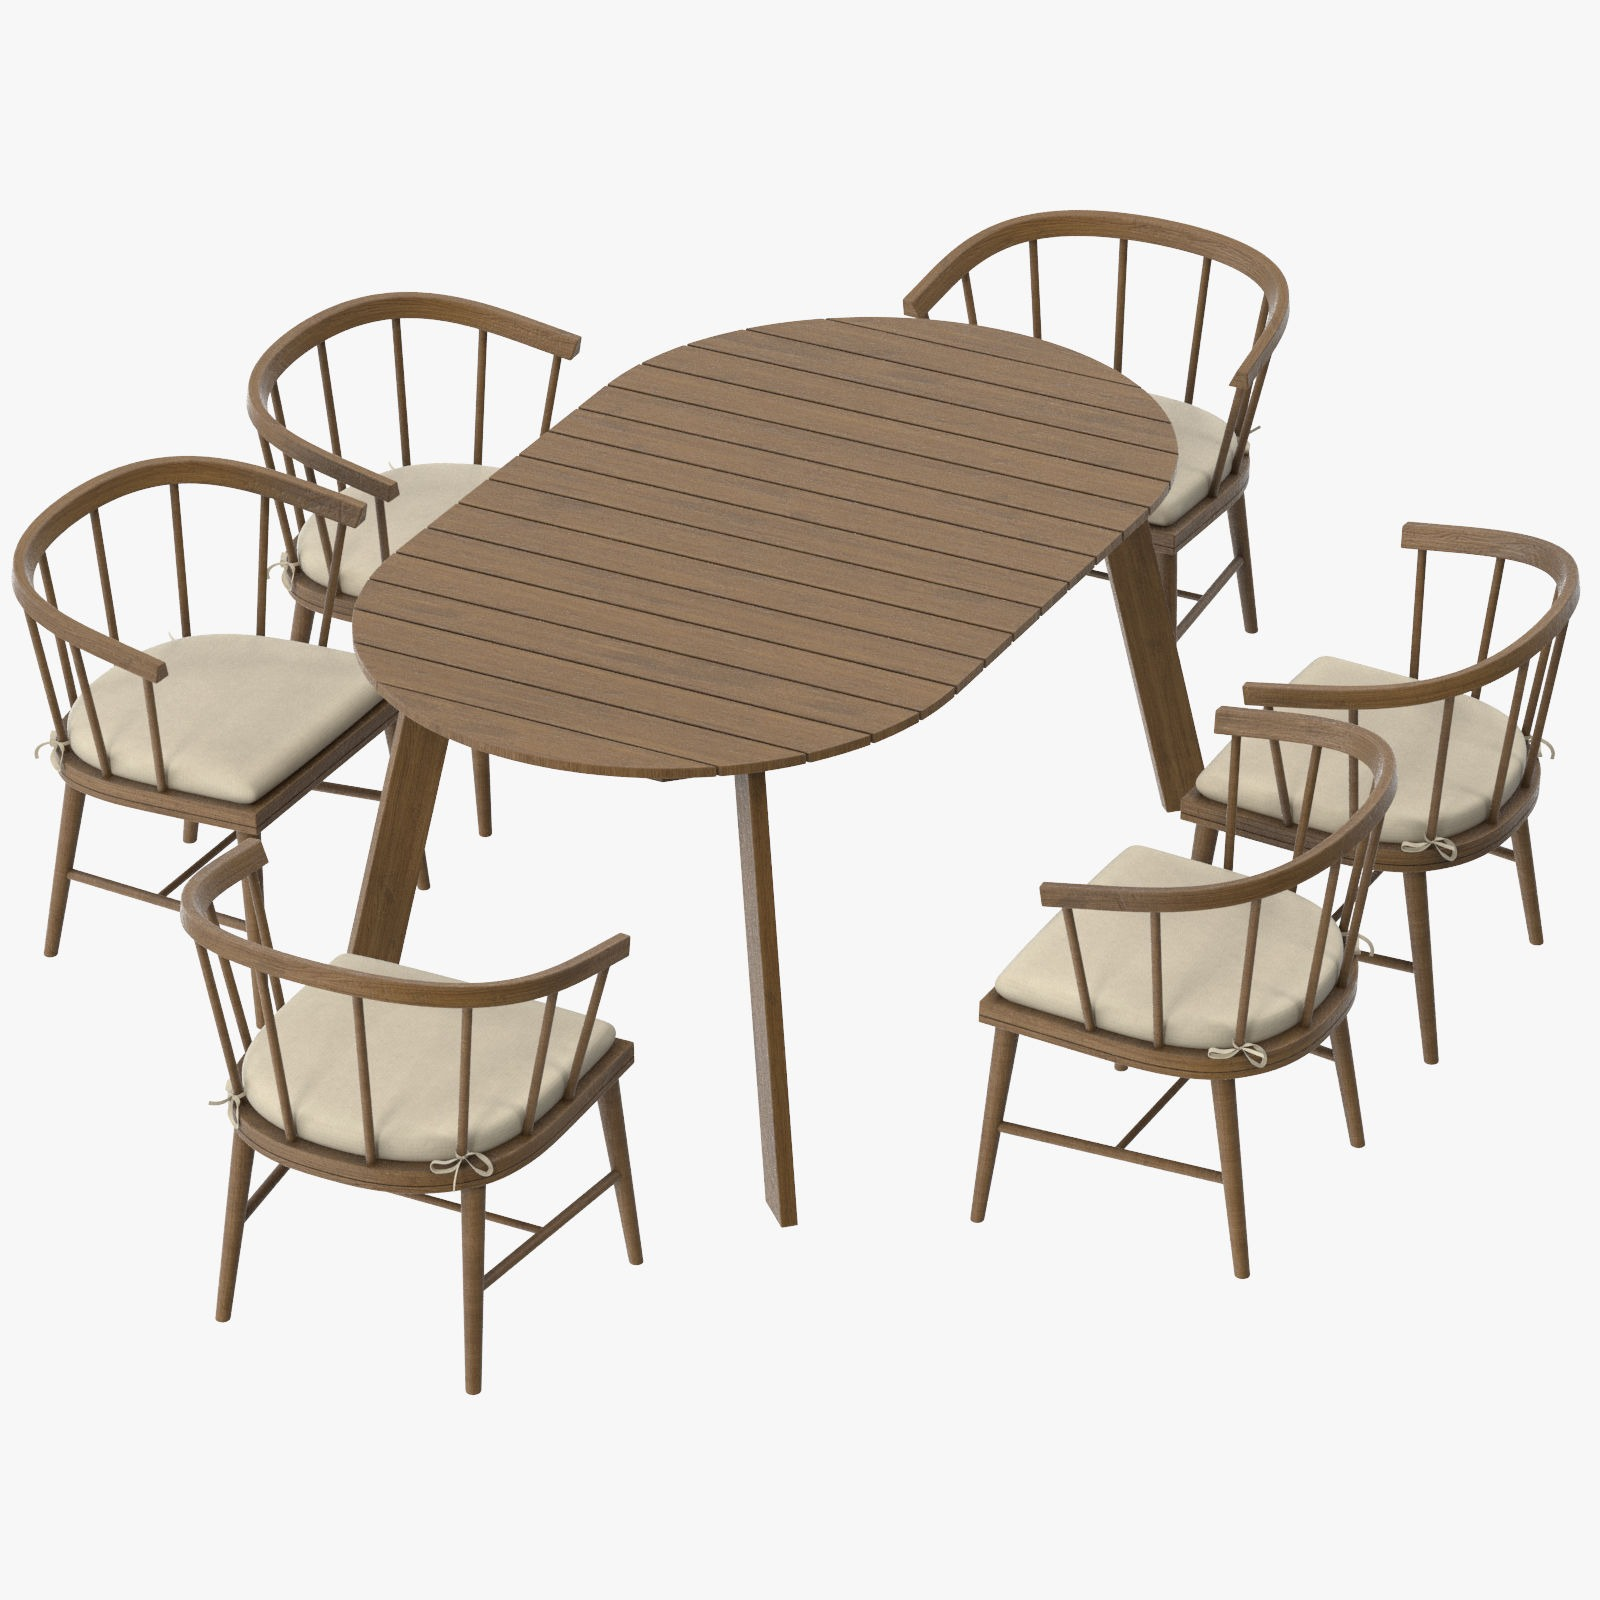 Outstanding Patio Dinning Table Round And 6 Chairs Bralicious Painted Fabric Chair Ideas Braliciousco